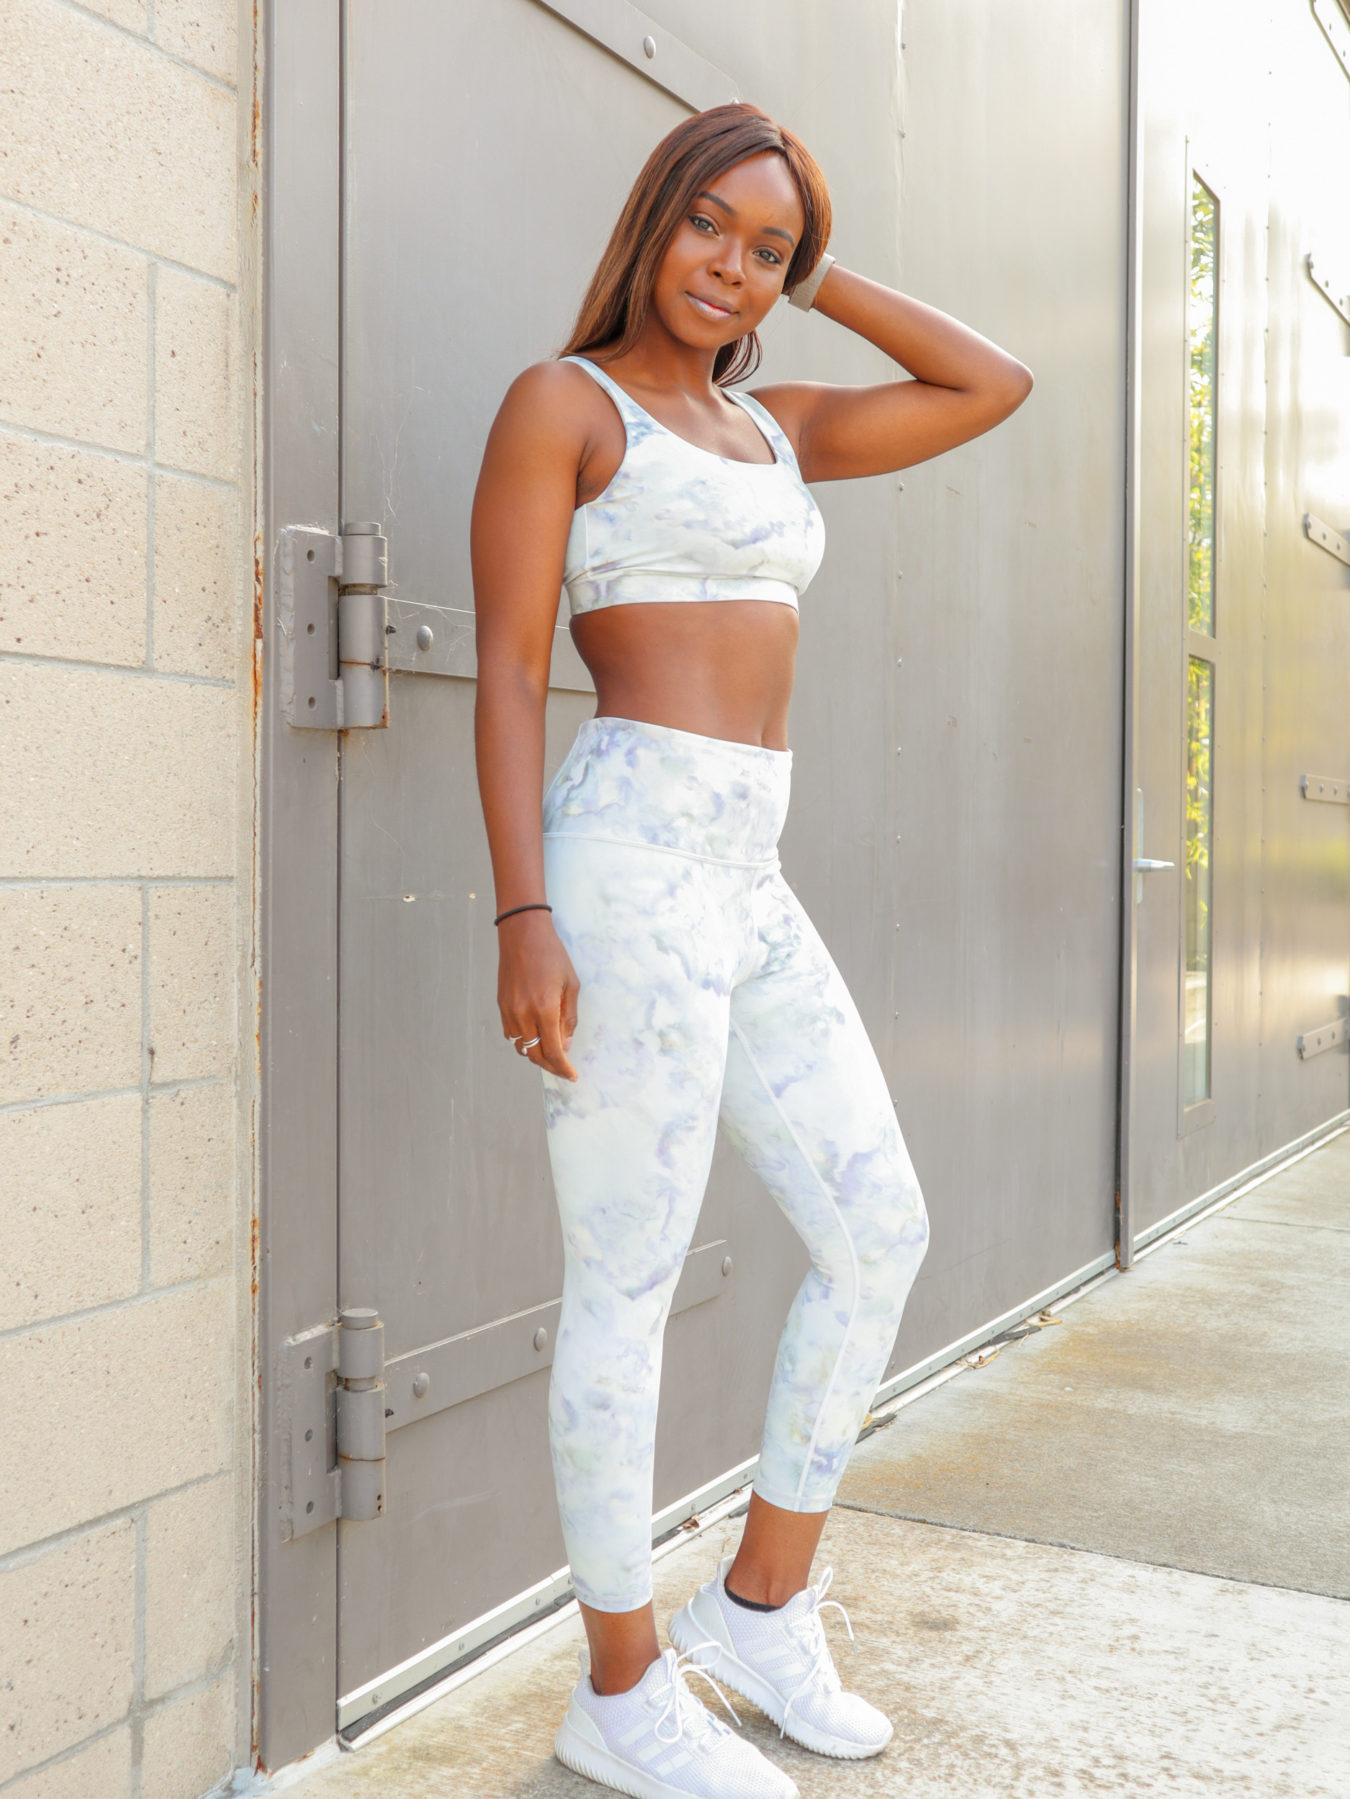 Athleta Review: Elation Snow Dye 7/8 Tight & Exhale Bra